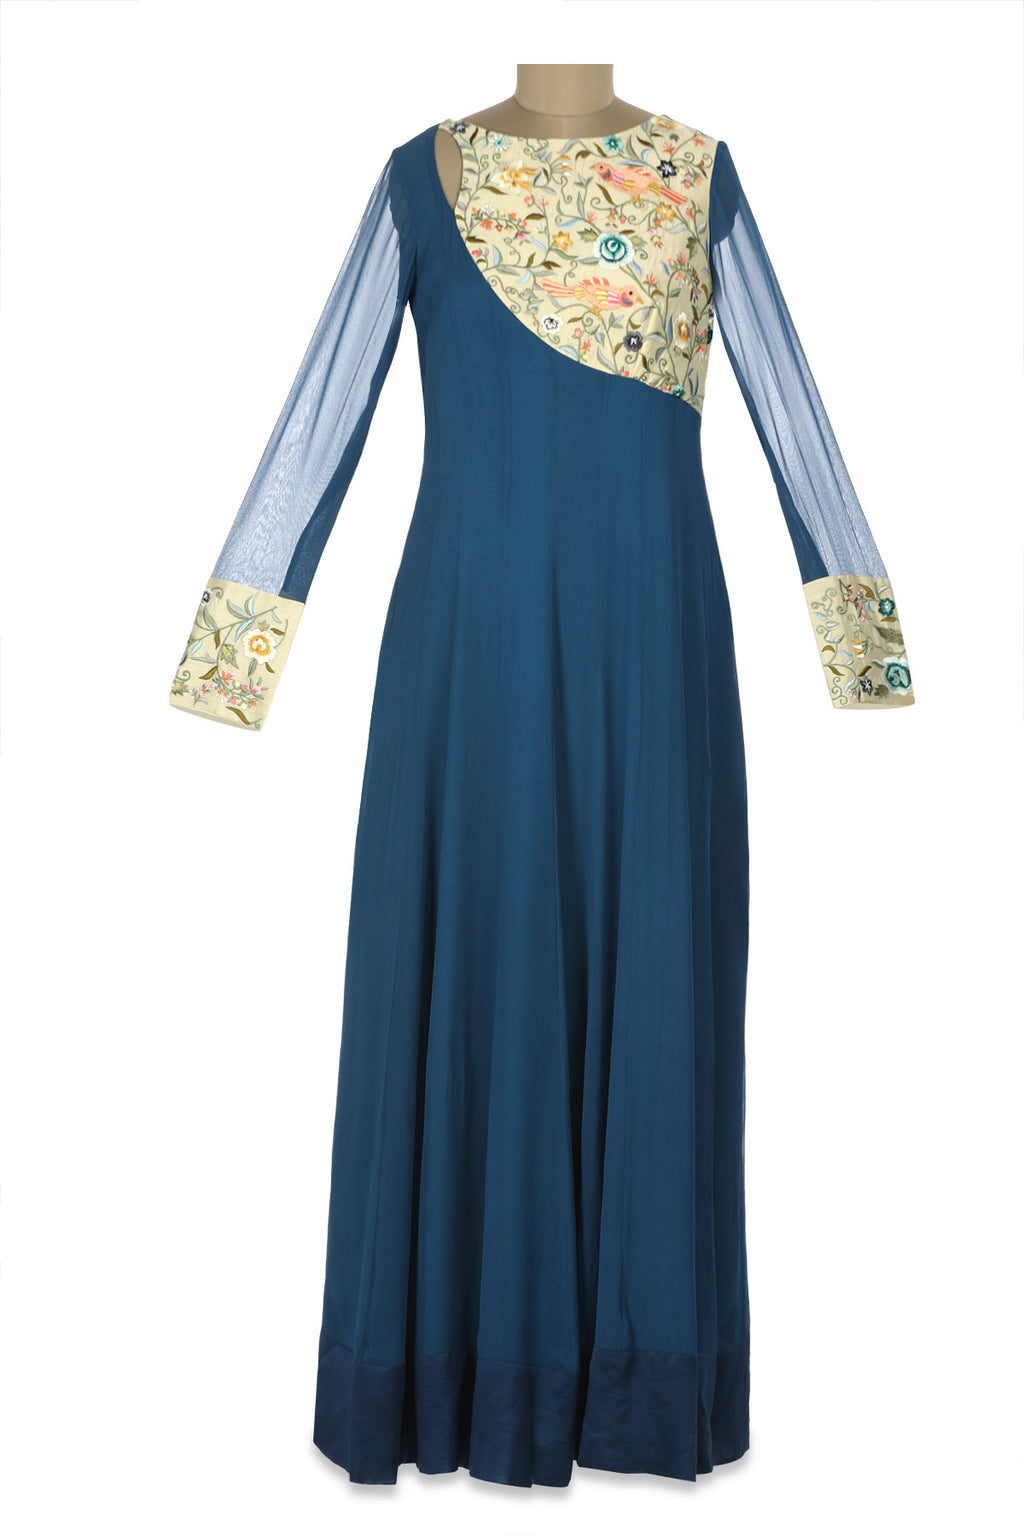 Shop blue Parsi embroidery georgette Anarkali gown online in USA. Shine at weddings and special occasions with beautiful Indian designer Anarkali suits, salwar suits, sharara suits, designer lehengas from Pure Elegance Indian clothing store in USA.-full view